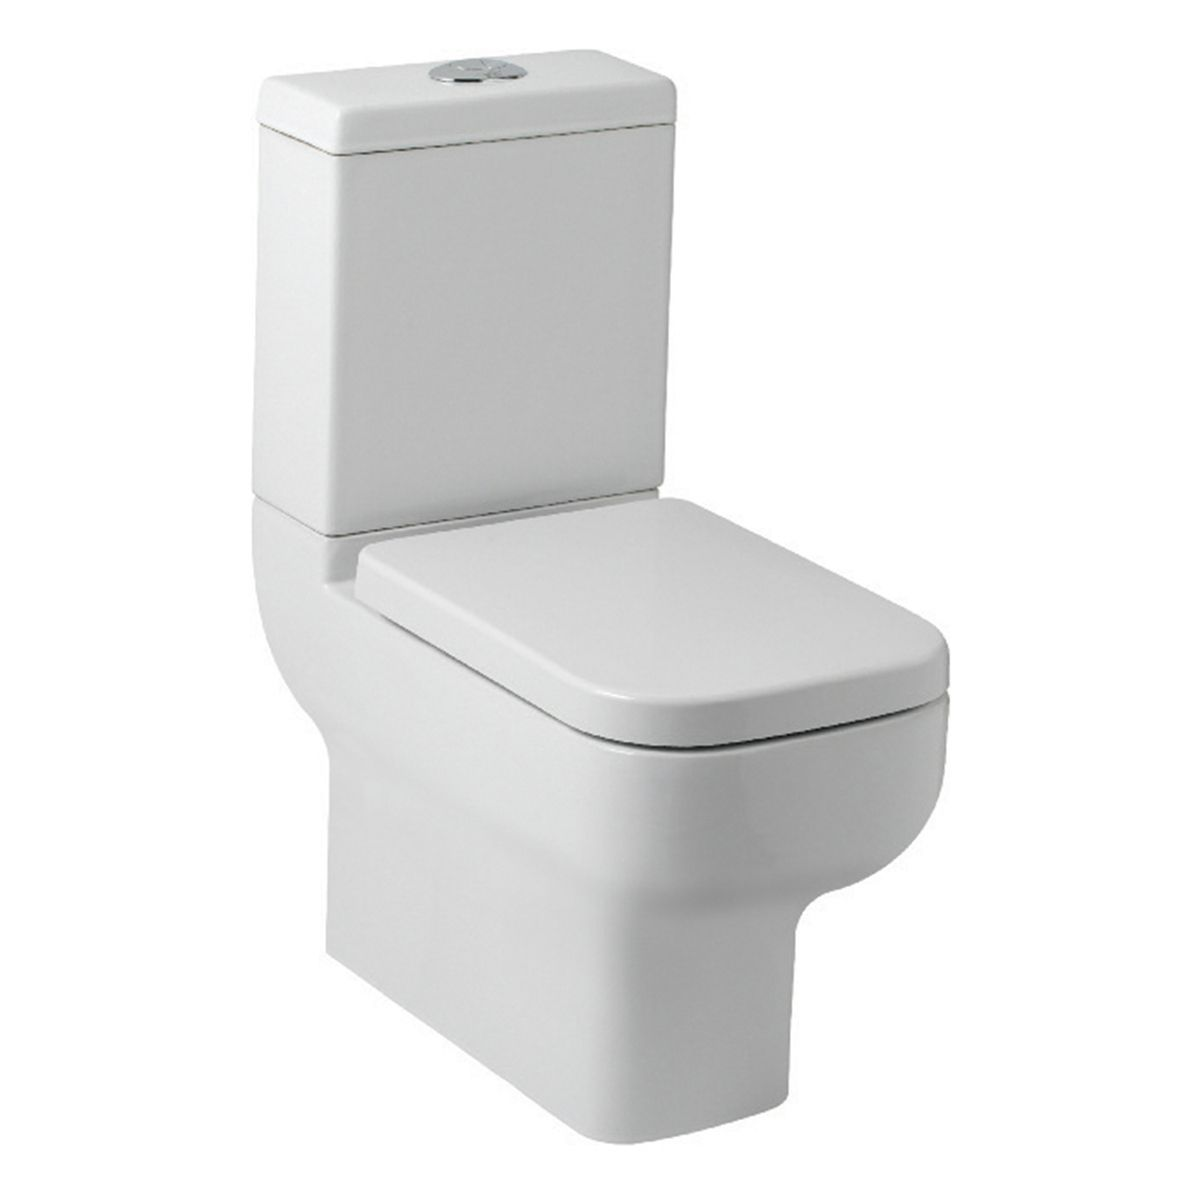 Kartell K-VIT Options 600 Close to Wall Toilet with Soft Close Seat